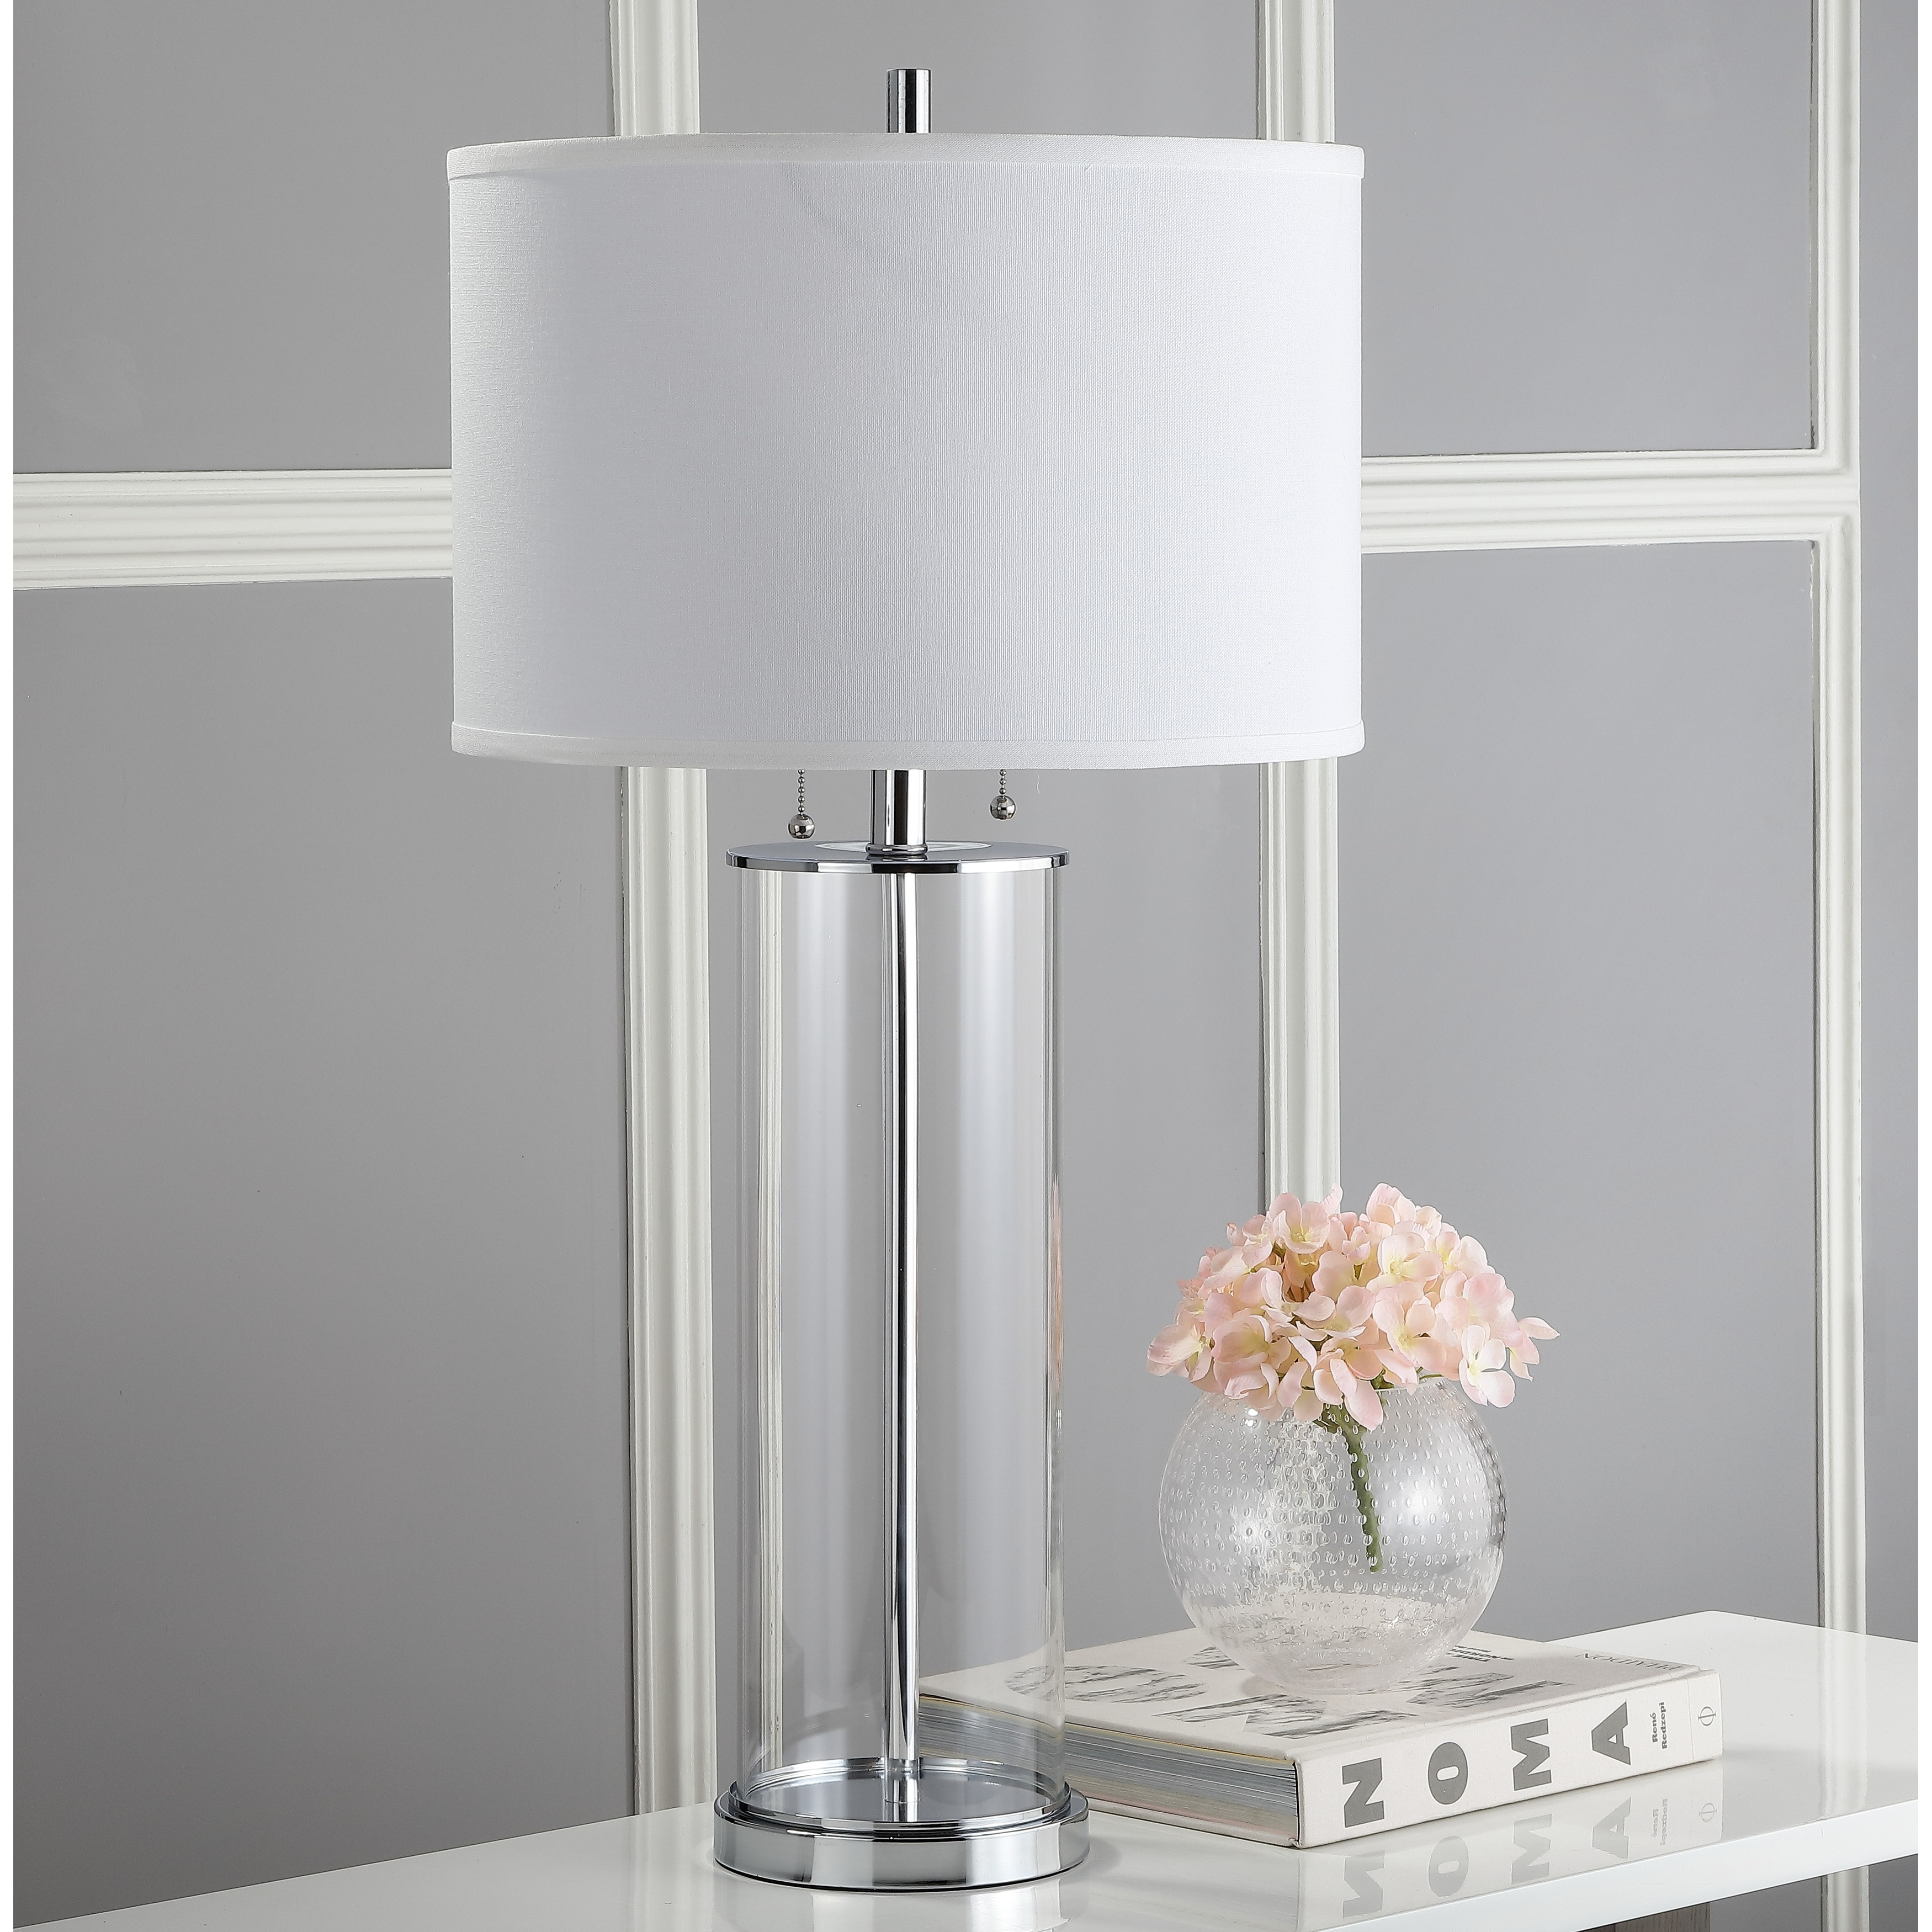 Shop For Safavieh Lighting 31 Inch Velma Clear Off White Table Lamp Set Of 2 16 X 16 X 31 Get Free Delivery On Everything At Overstock Your Online Lamps Lamp Shades Store Get 5 In Rewards With Club O 13434465